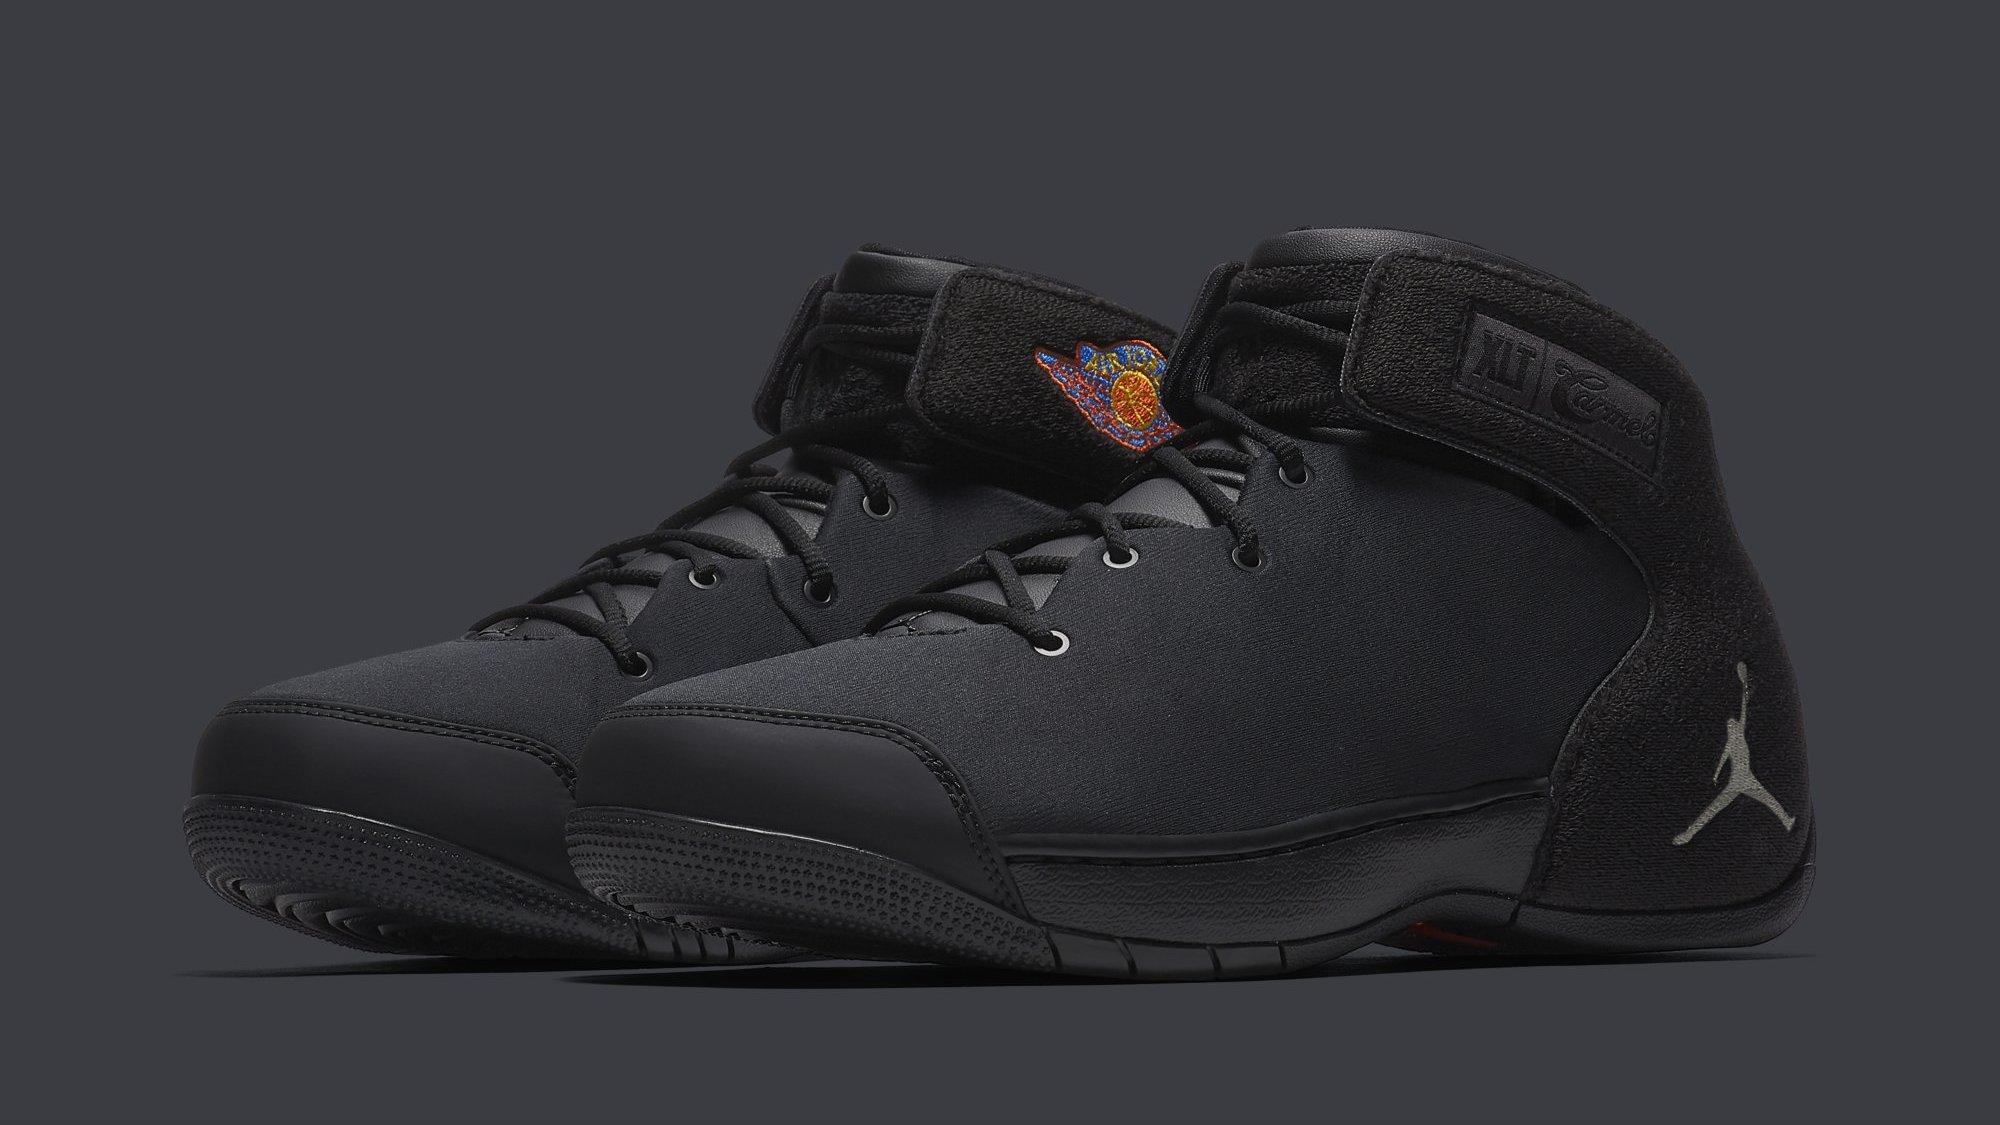 d6f82136b981 ... where to buy jordan melo 1.5 se hoodie melo at5386 001 release date  sole collector 46506